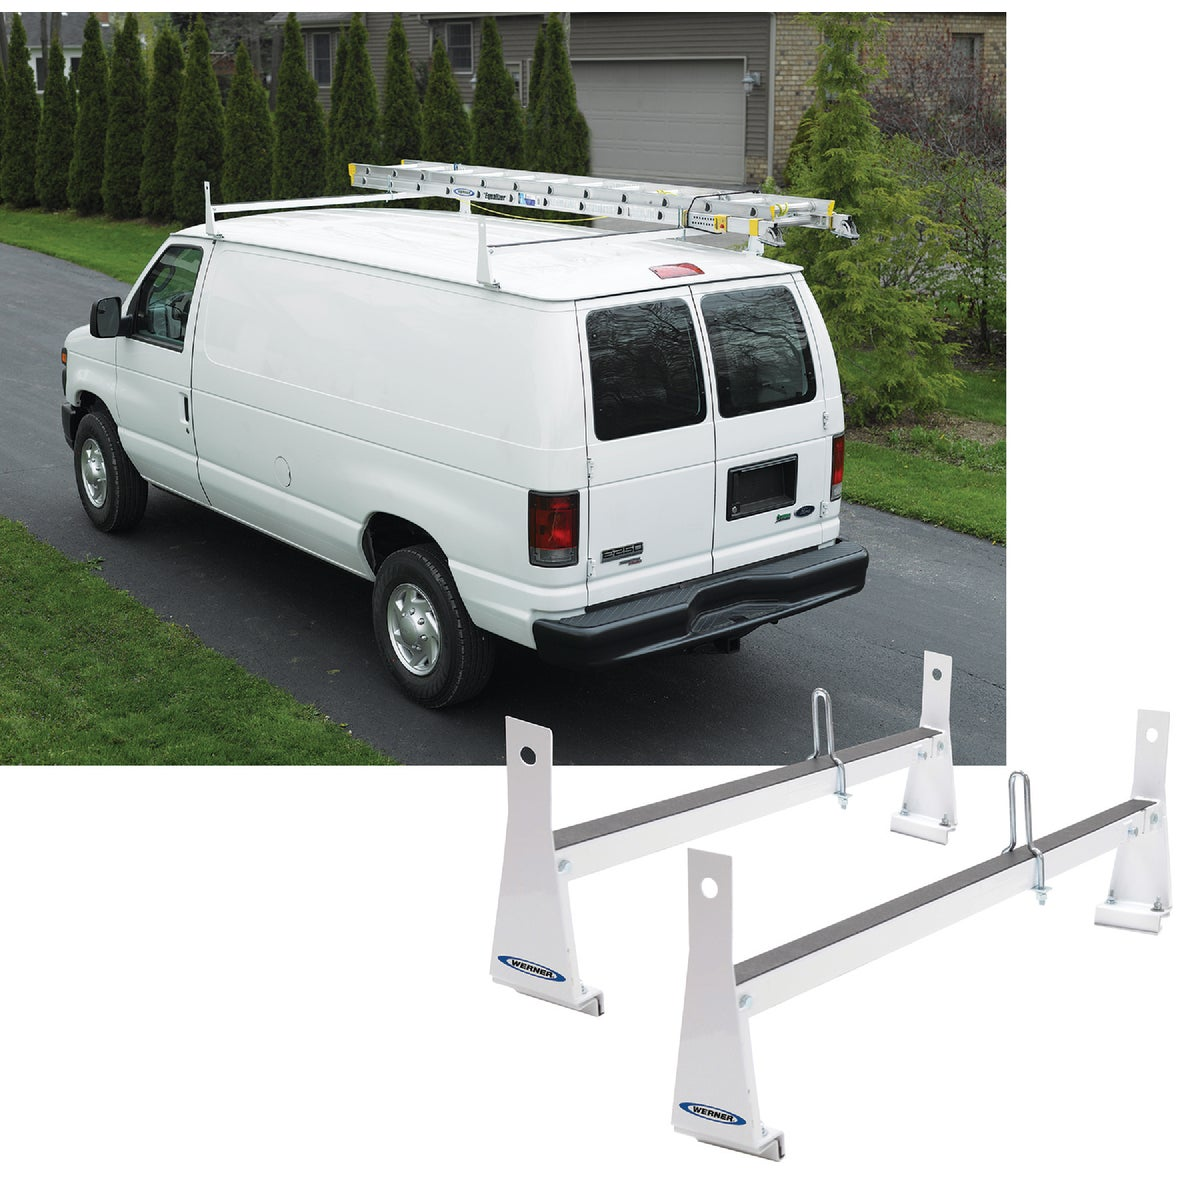 600LB WHITE VAN RACK - VR401-W by Werner Ladder